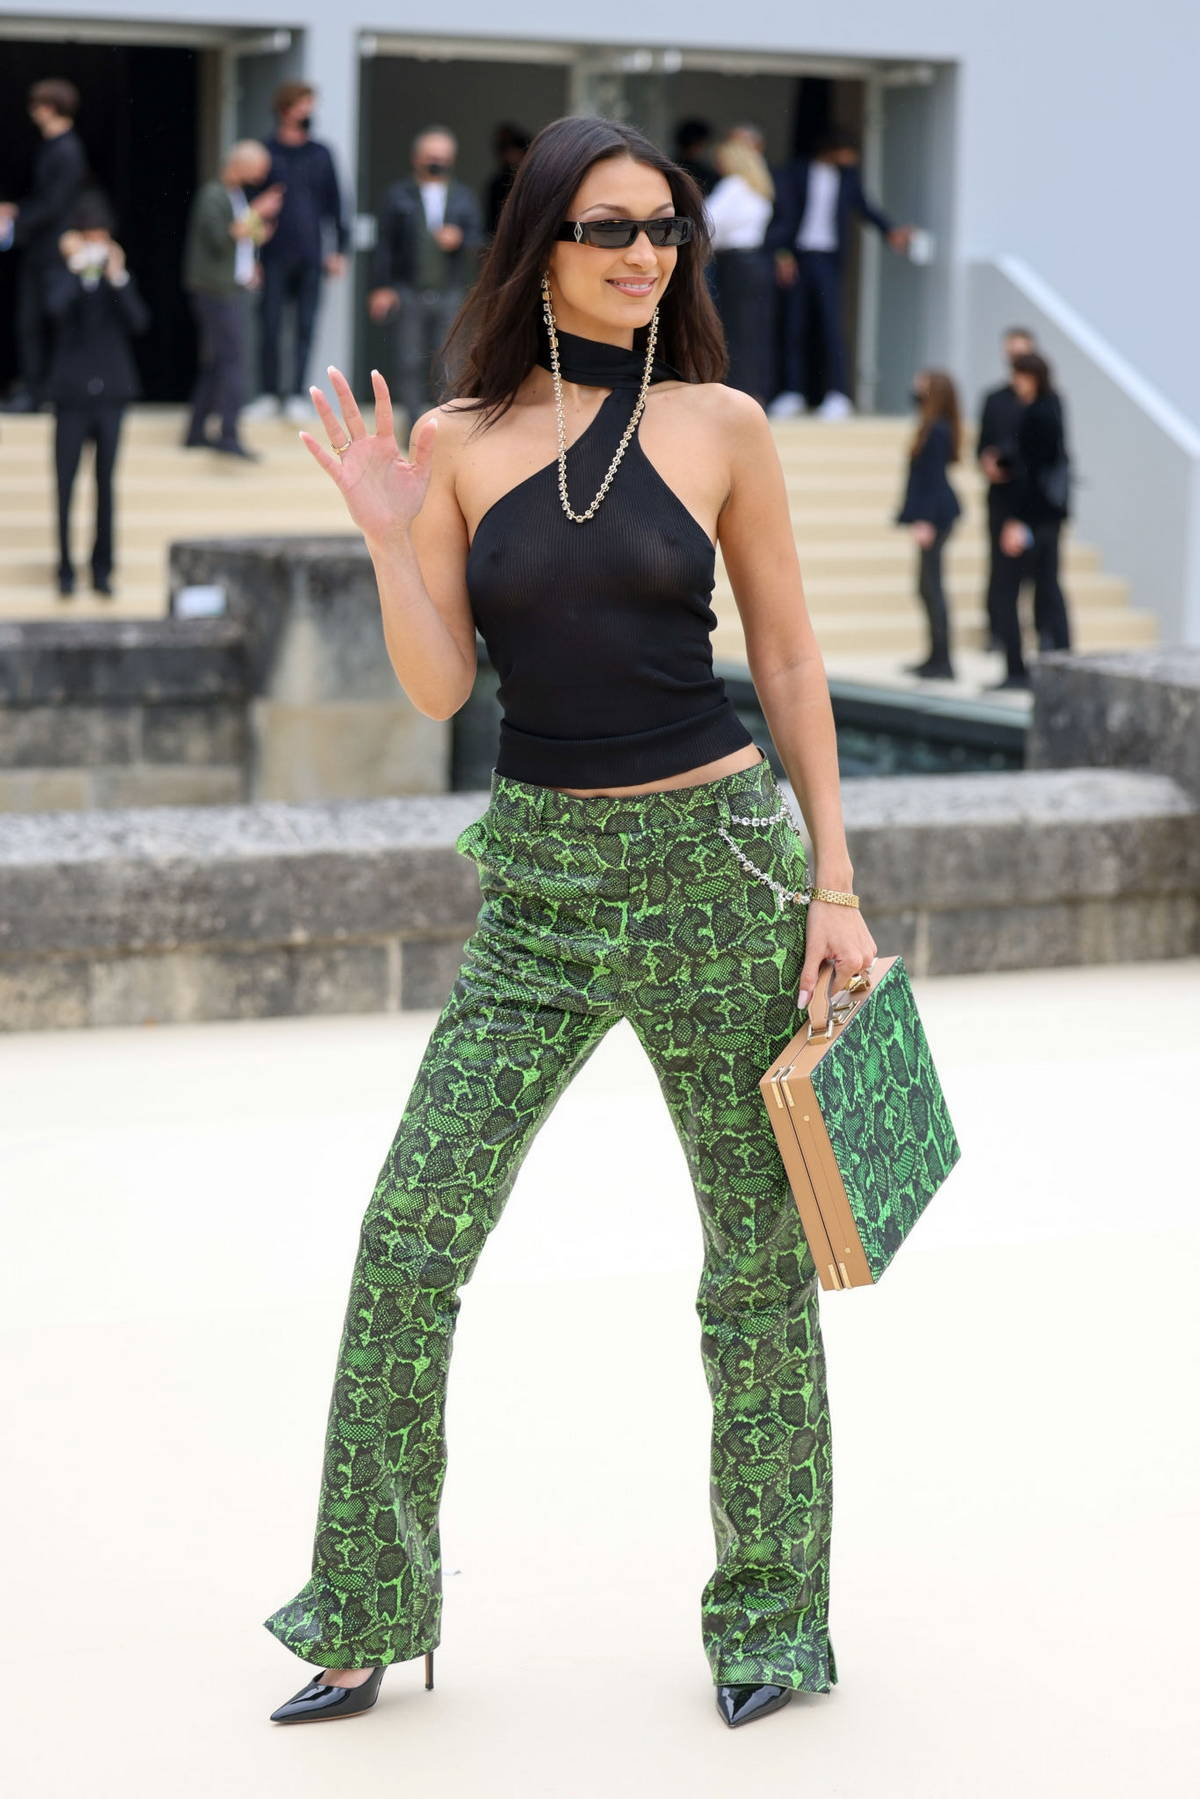 Bella Hadid attends the Dior Homme Menswear Spring-Summer 2022 show in Paris, France